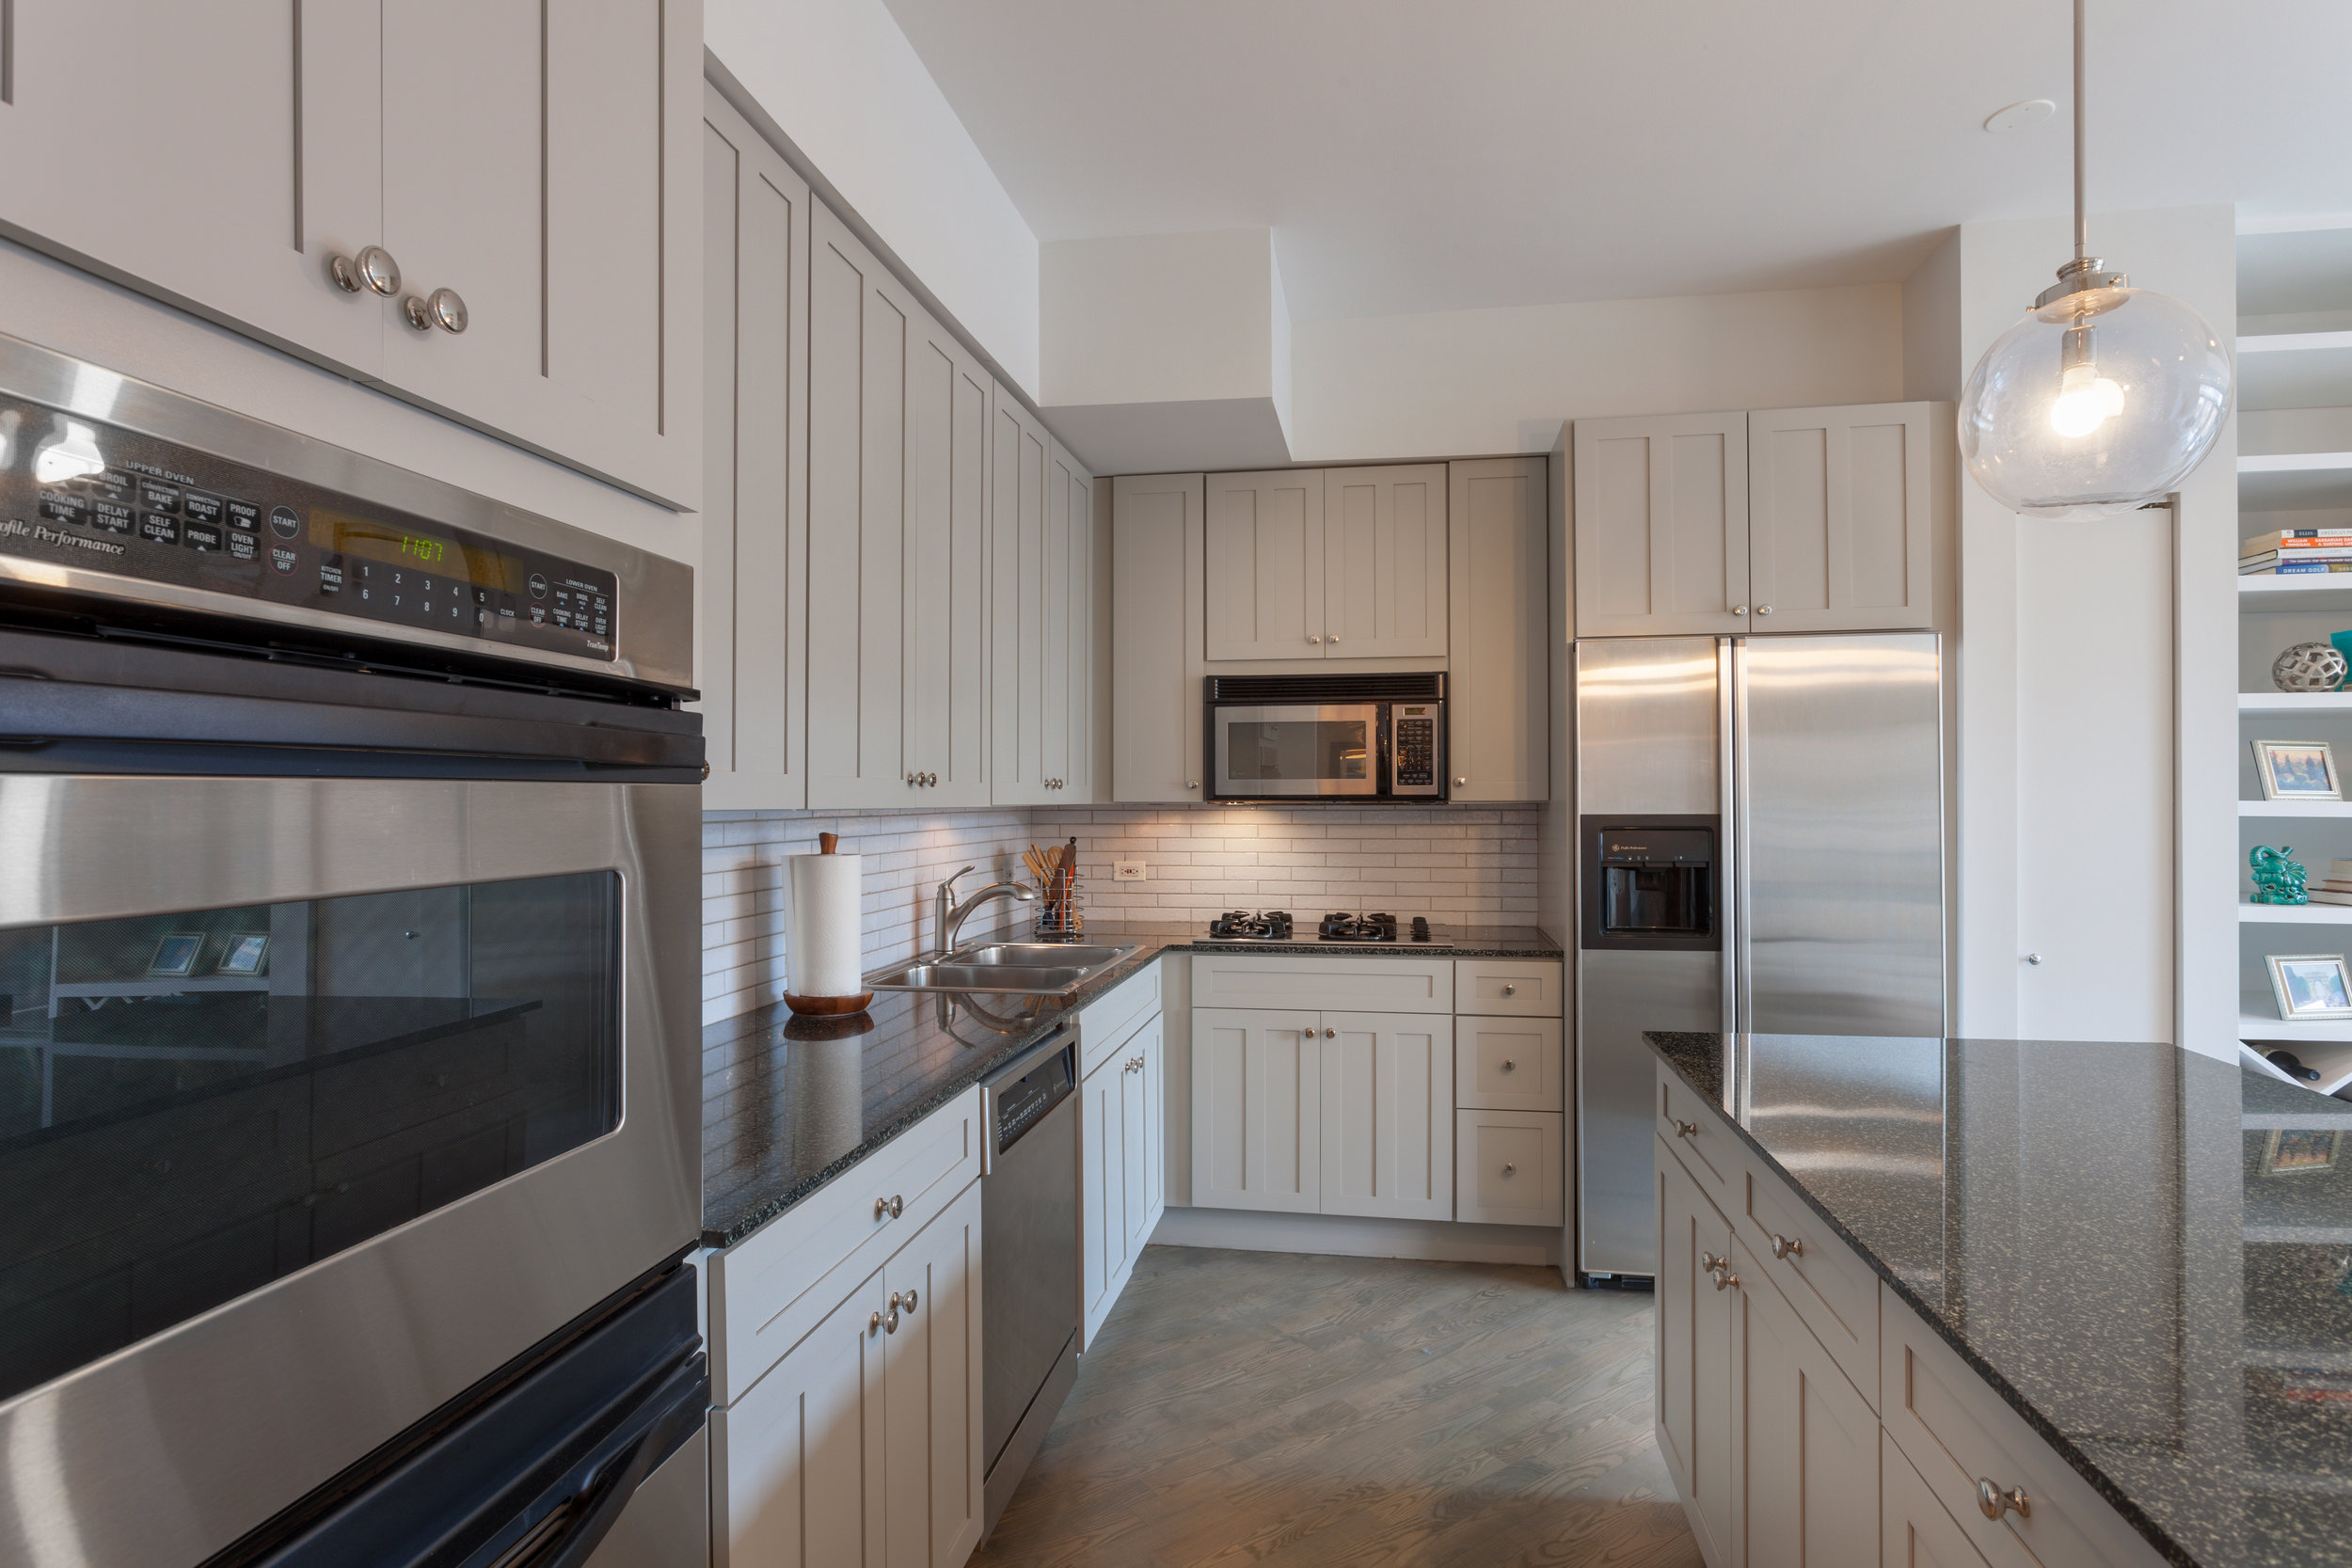 West Loop Condo - Construction Cost: $25,000Construction Time: 2 WeeksMarket Time: 15 DaysList Price: $675,000Sale Price: $670,000